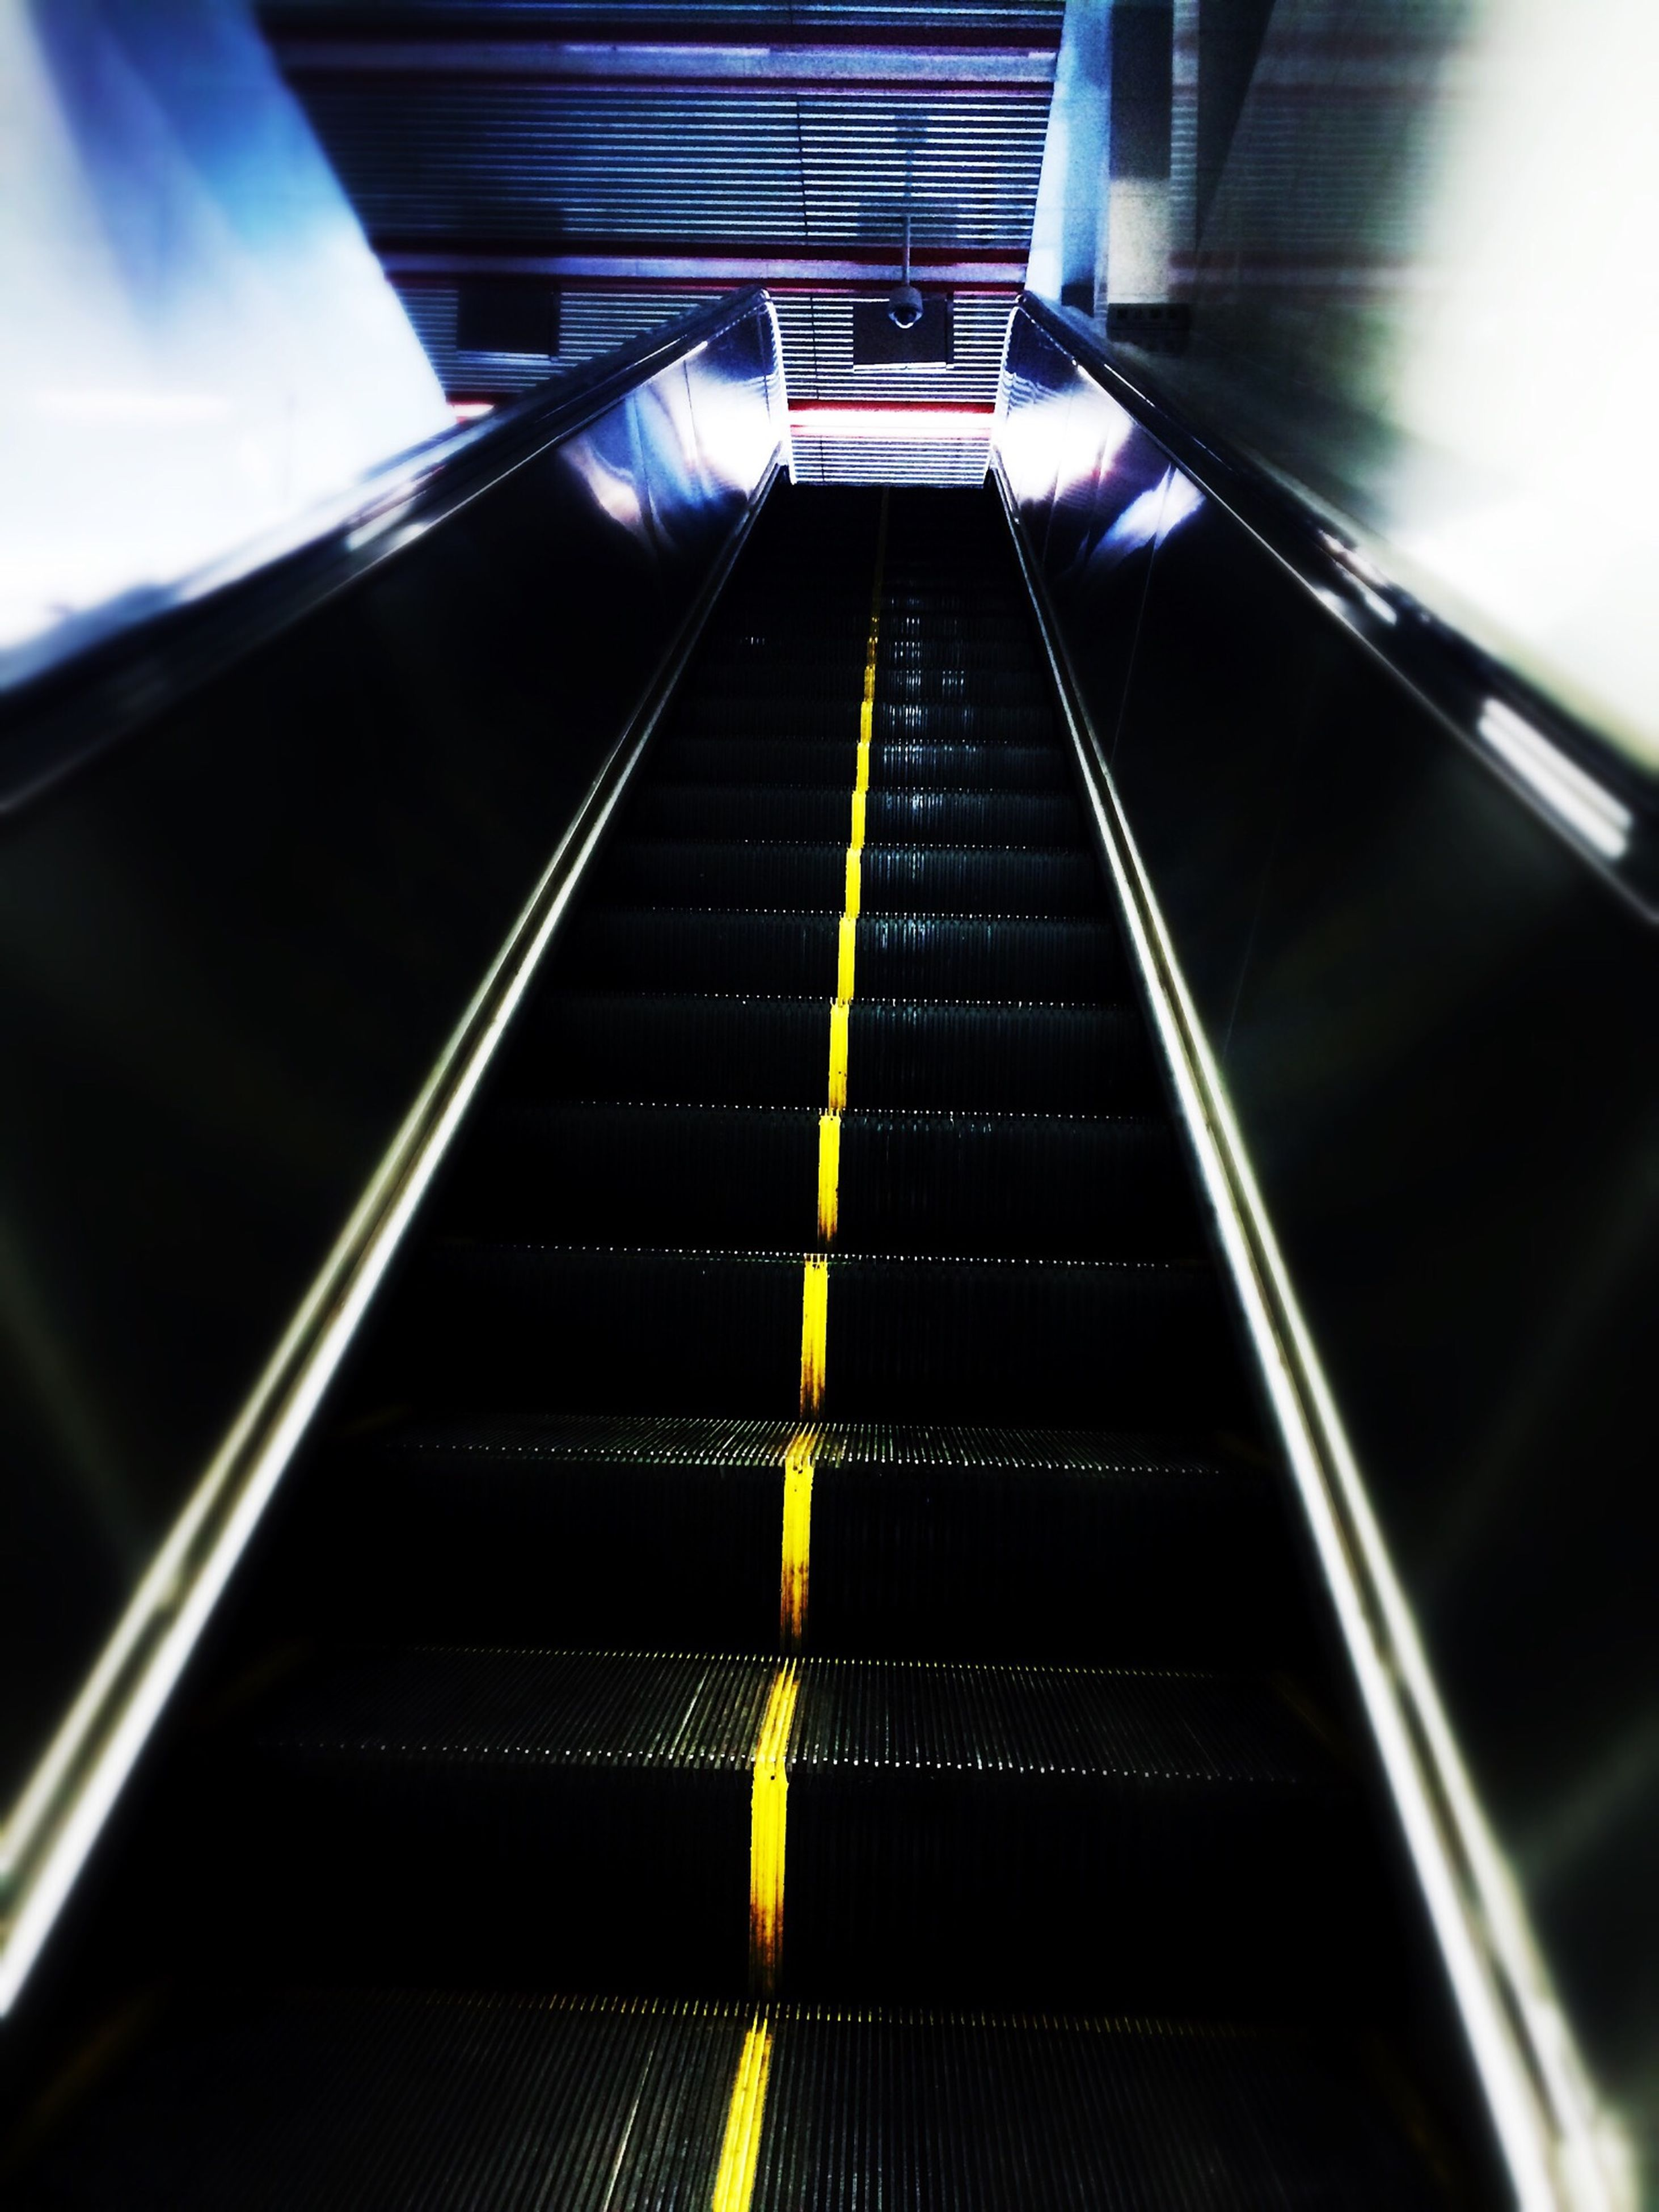 escalator, indoors, steps and staircases, the way forward, diminishing perspective, railing, steps, staircase, modern, transportation, vanishing point, low angle view, convenience, technology, metal, high angle view, built structure, architecture, futuristic, no people